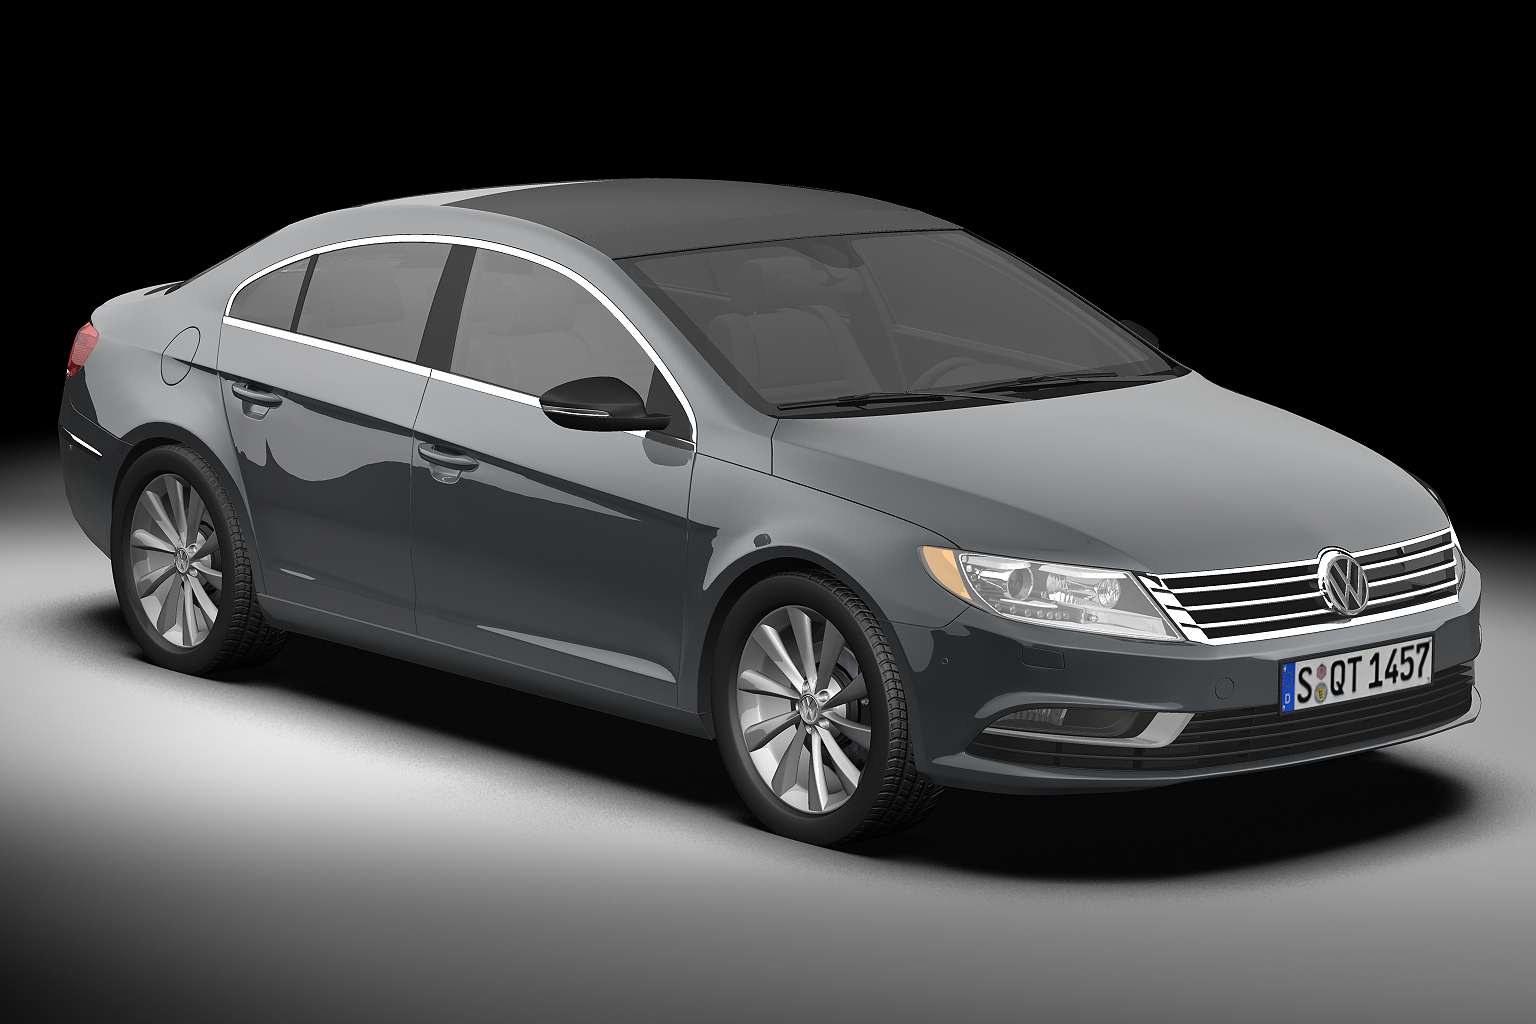 2013 volkswagen cc 3d model buy 2013 volkswagen cc 3d model flatpyramid. Black Bedroom Furniture Sets. Home Design Ideas